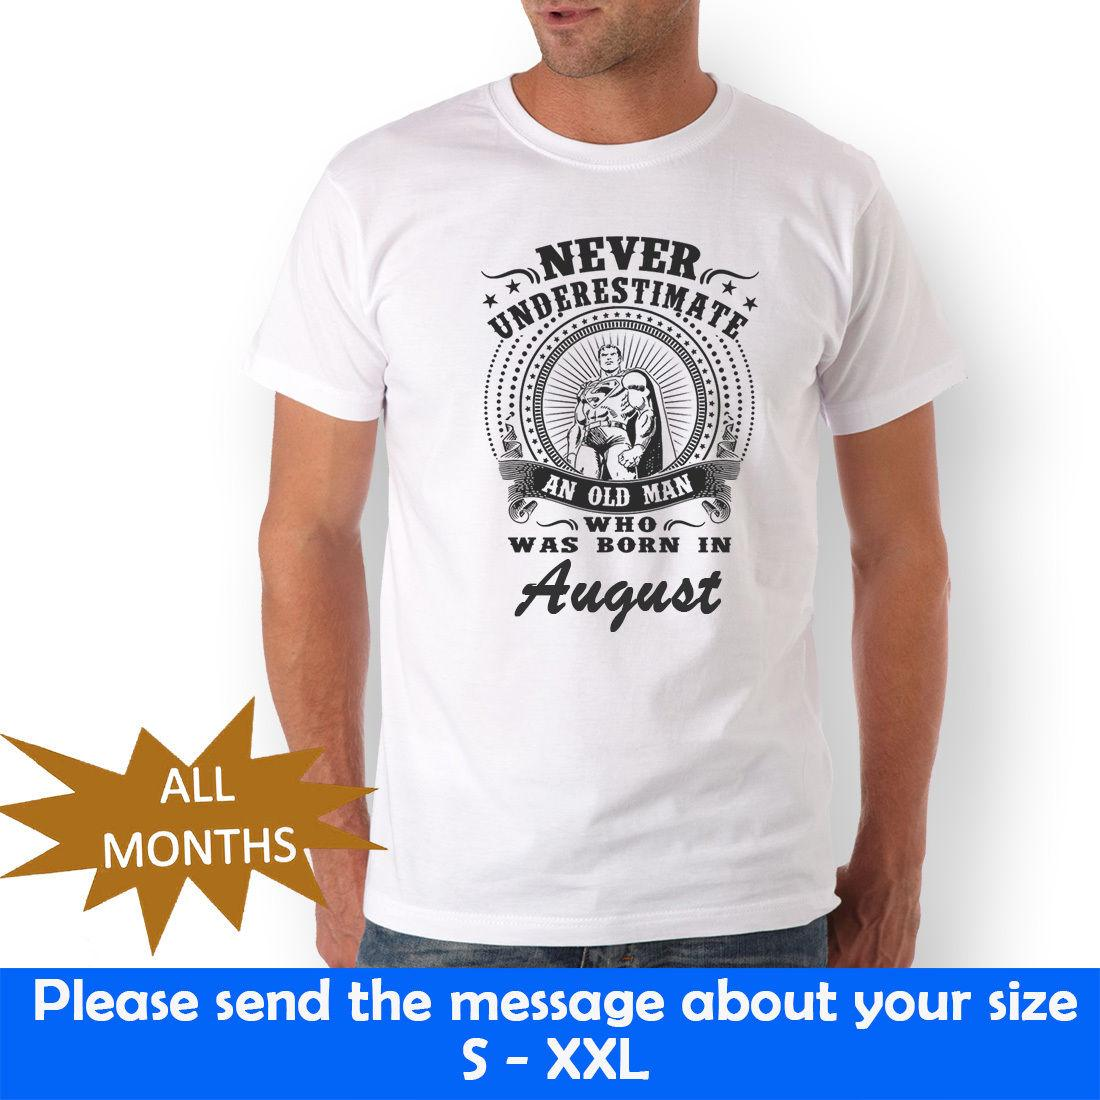 Never Underestimate Birthday Gift T Shirt Born In August Month Men S 2XL Rude Shirts Online From Bstdhgate06 1101